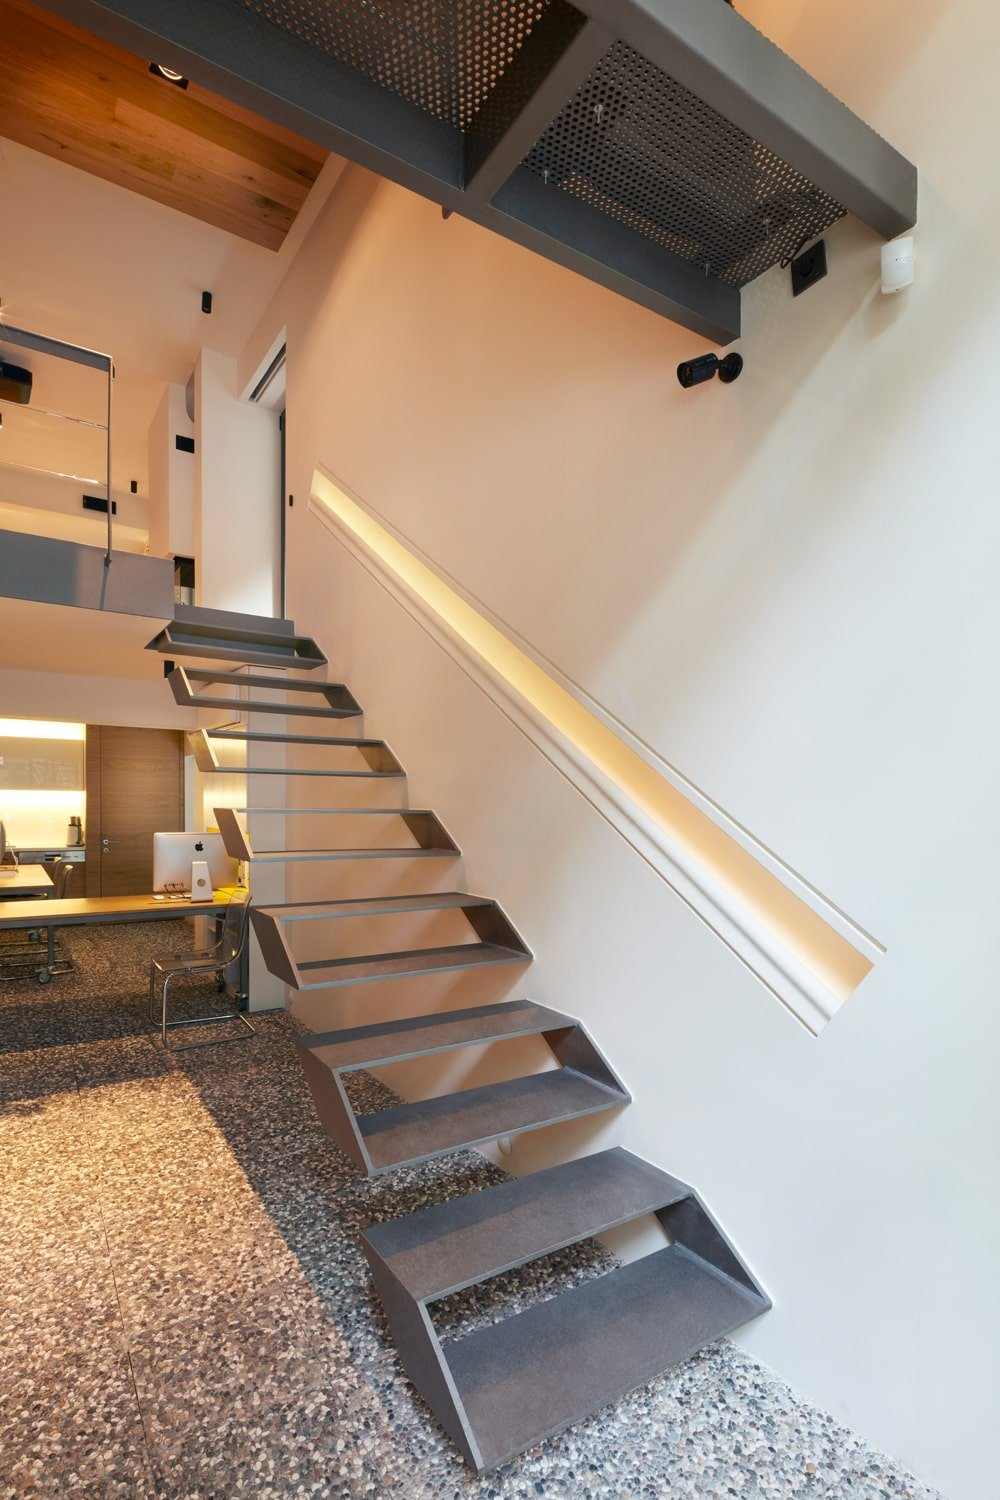 This is a closer look at the gray modern floating staircase with a handle embedded into the wall beside it.